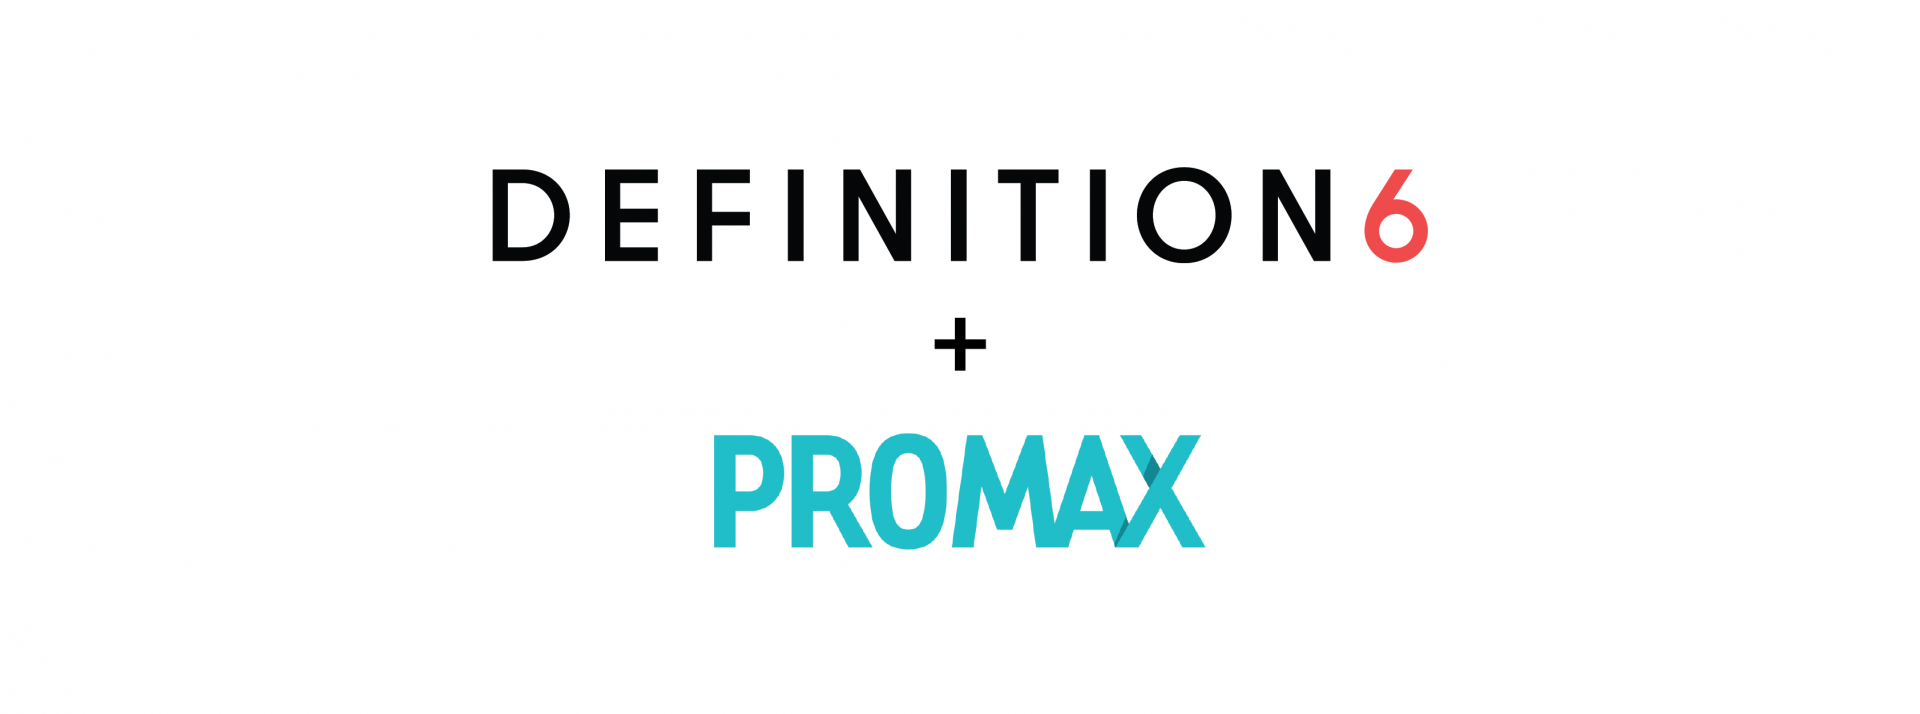 Blog header image showing Promax and DEFINITION 6